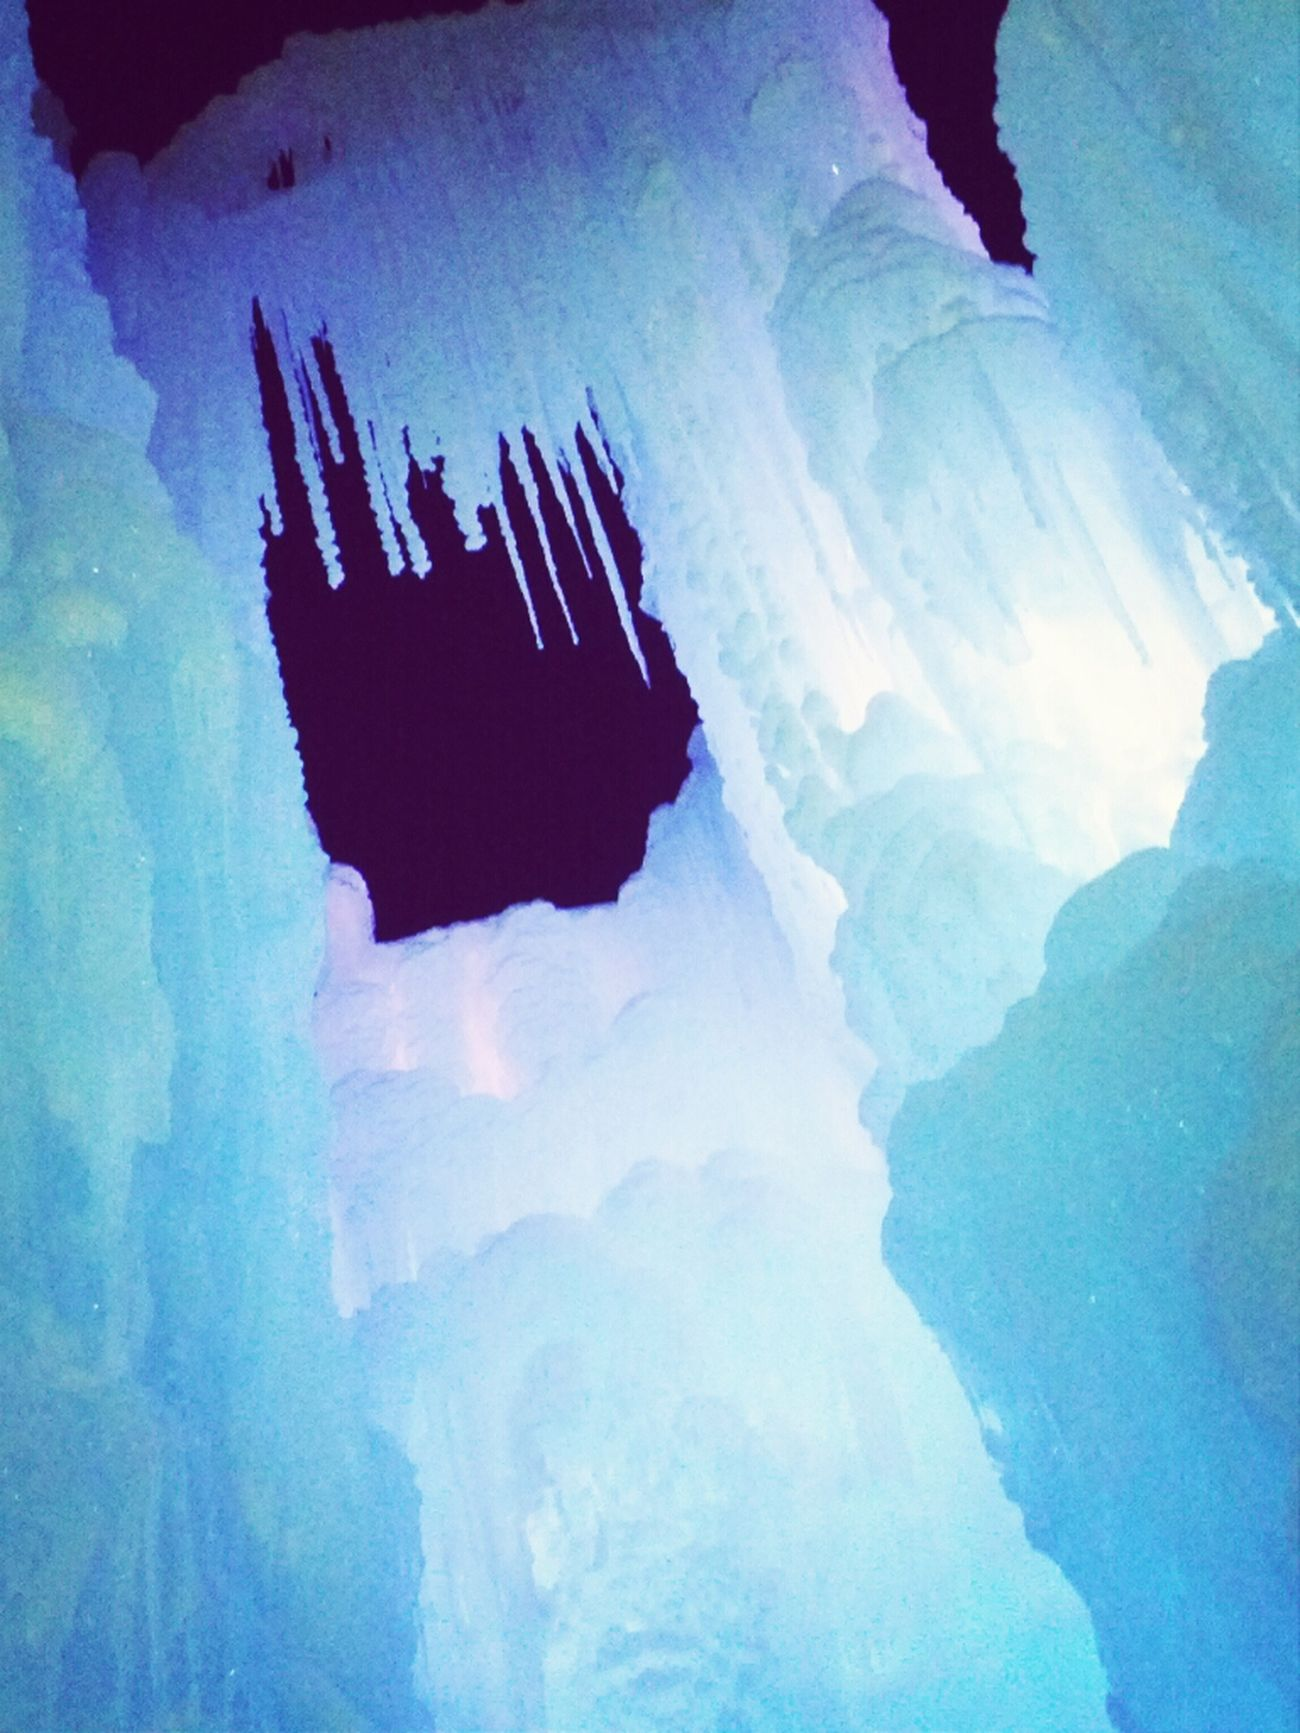 Inside Ice Castle